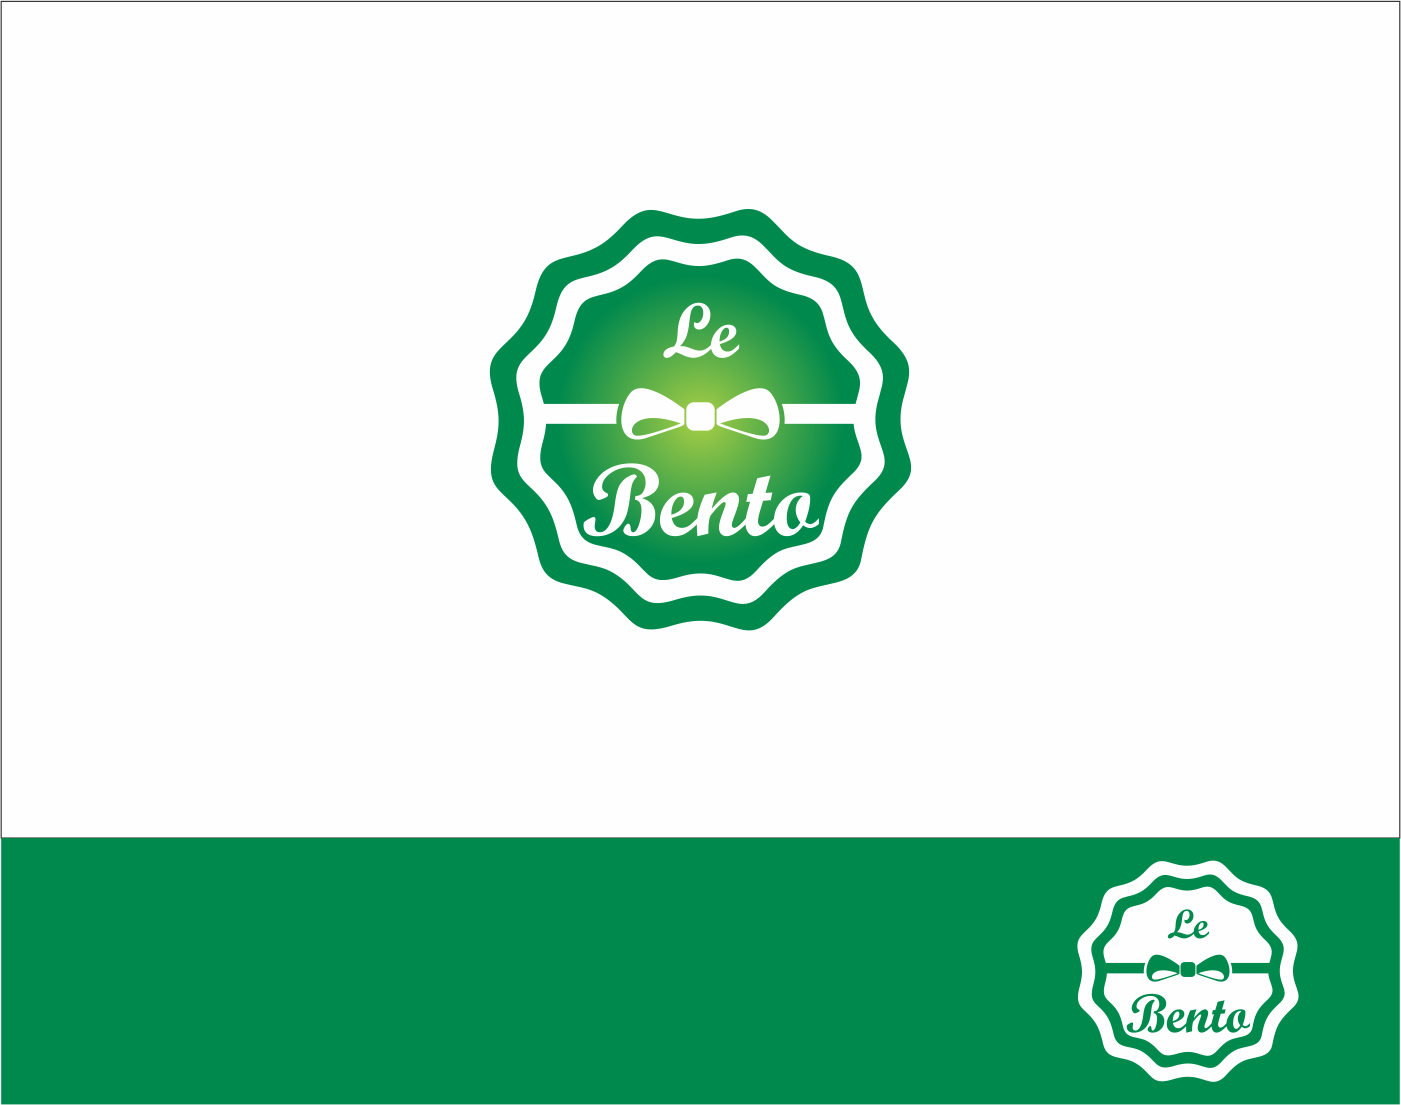 Logo Design by Armada Jamaluddin - Entry No. 69 in the Logo Design Contest Captivating Logo Design for Le Bento.